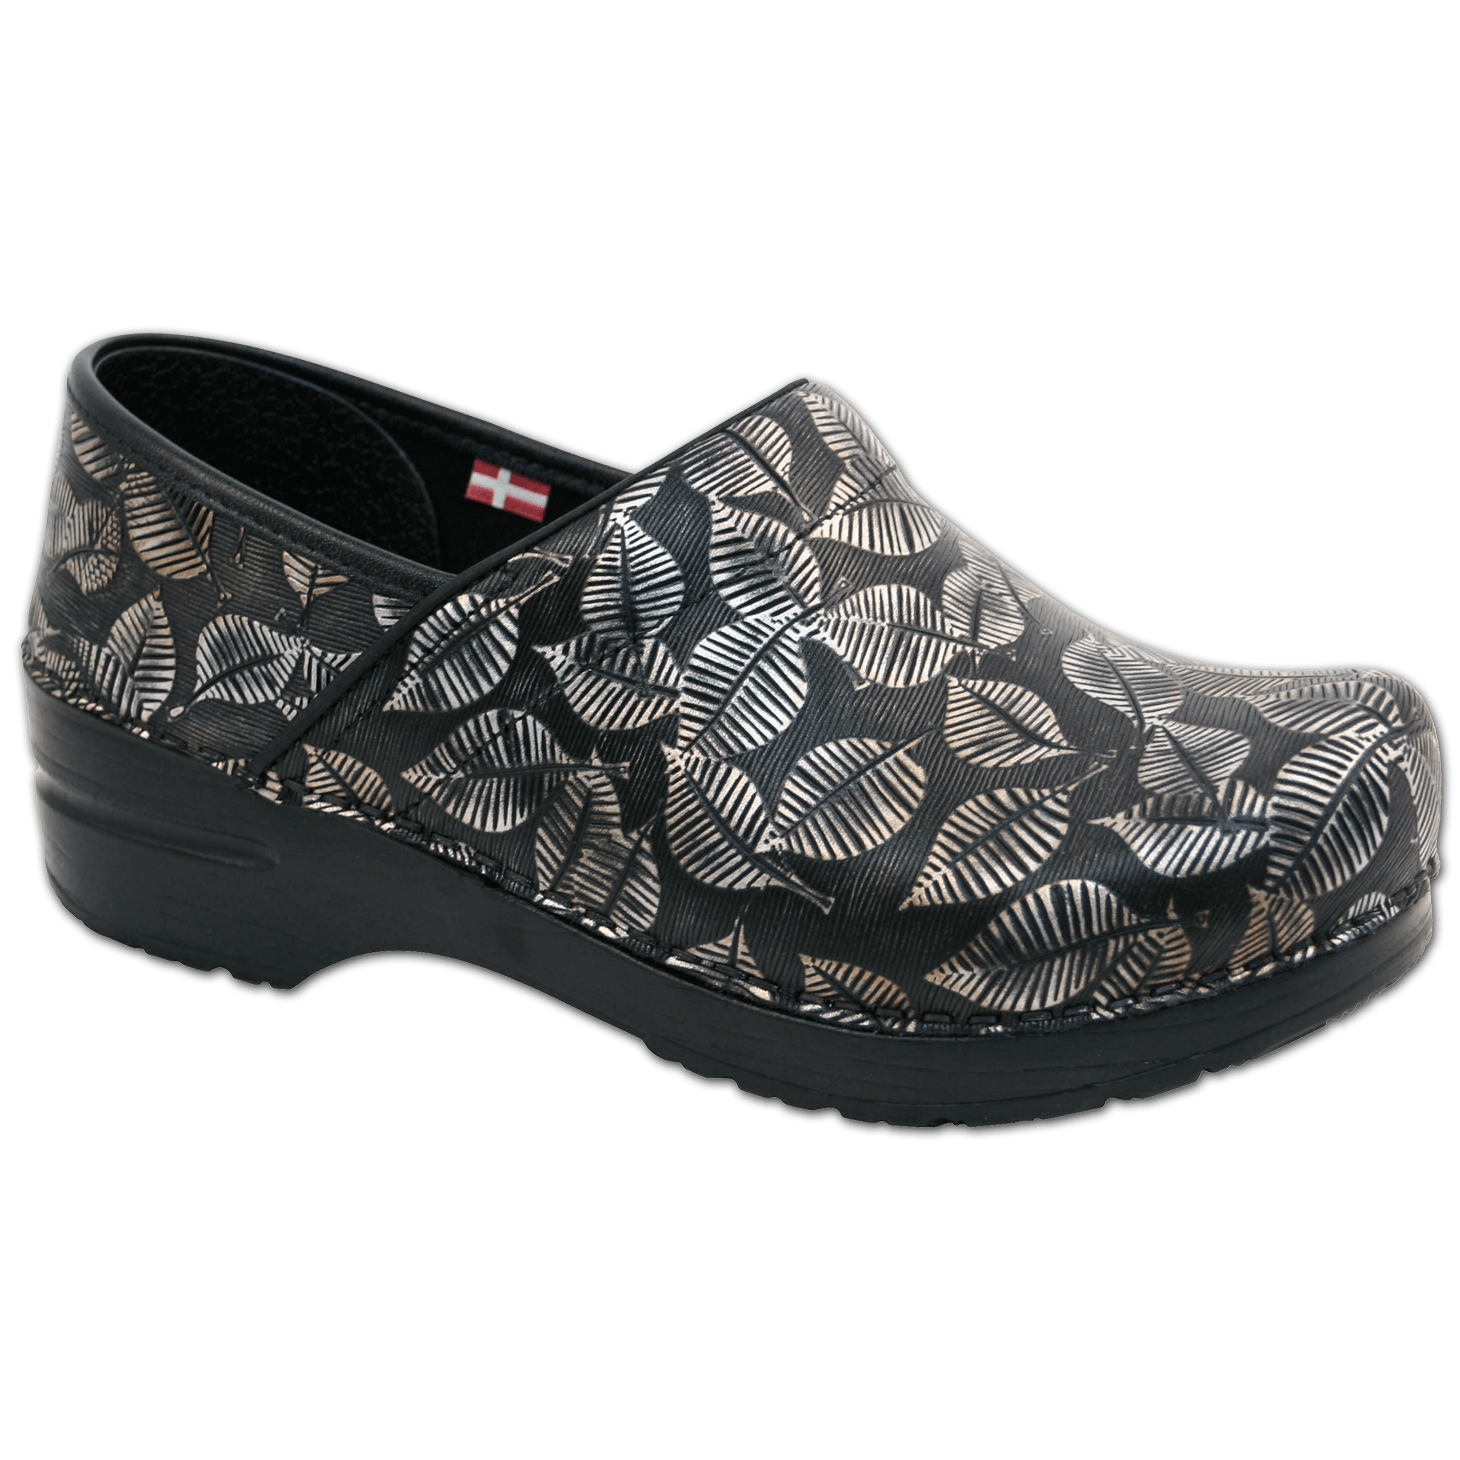 Sanita Hampden Women's in Black Closed Back Clog